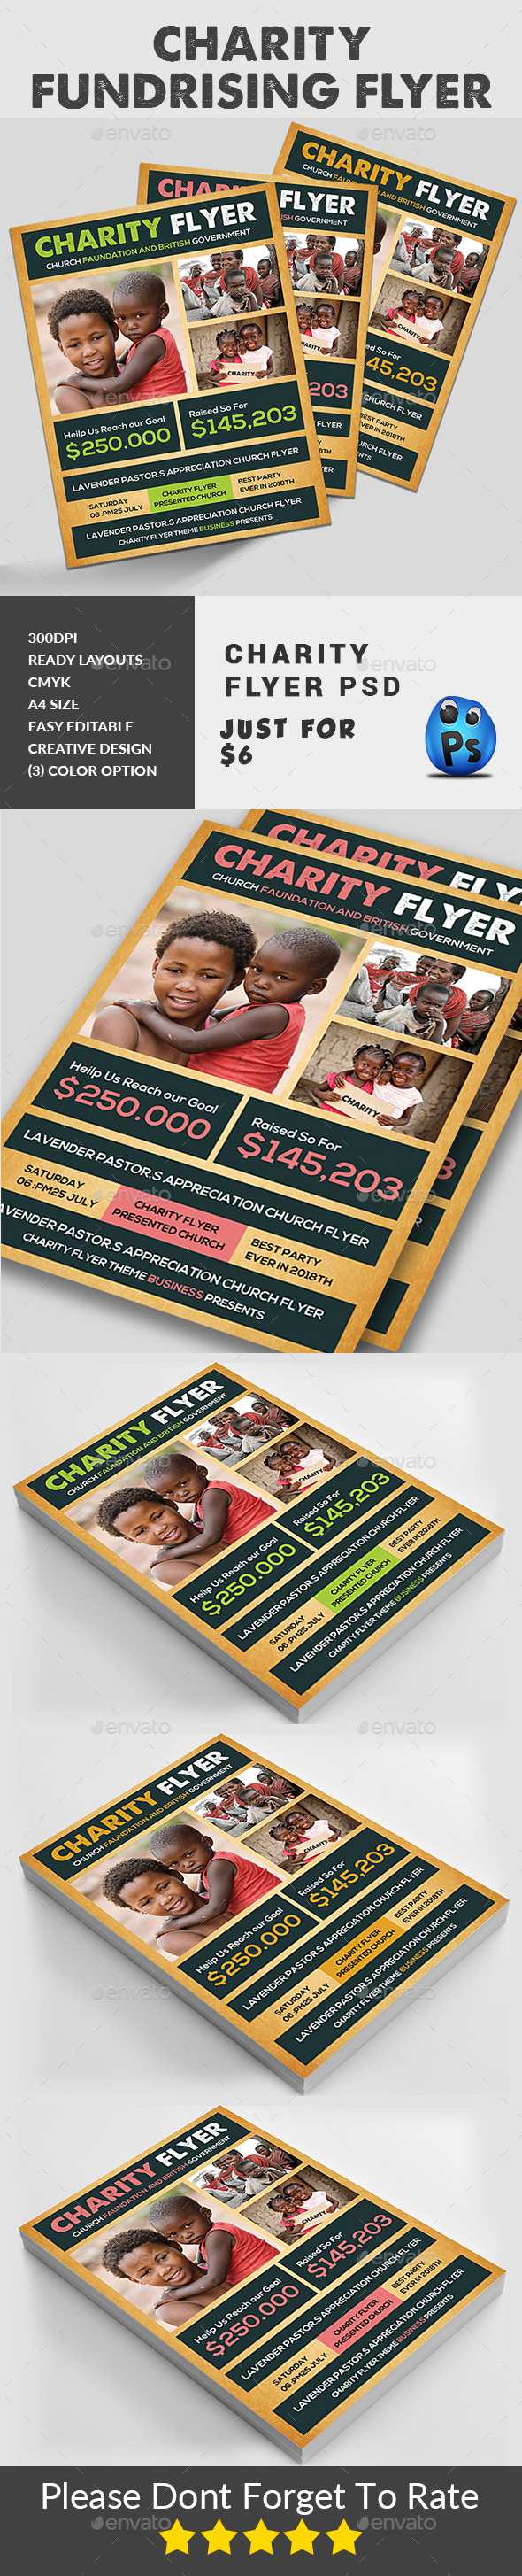 Charity Fundraisers Flyer - Corporate Flyers